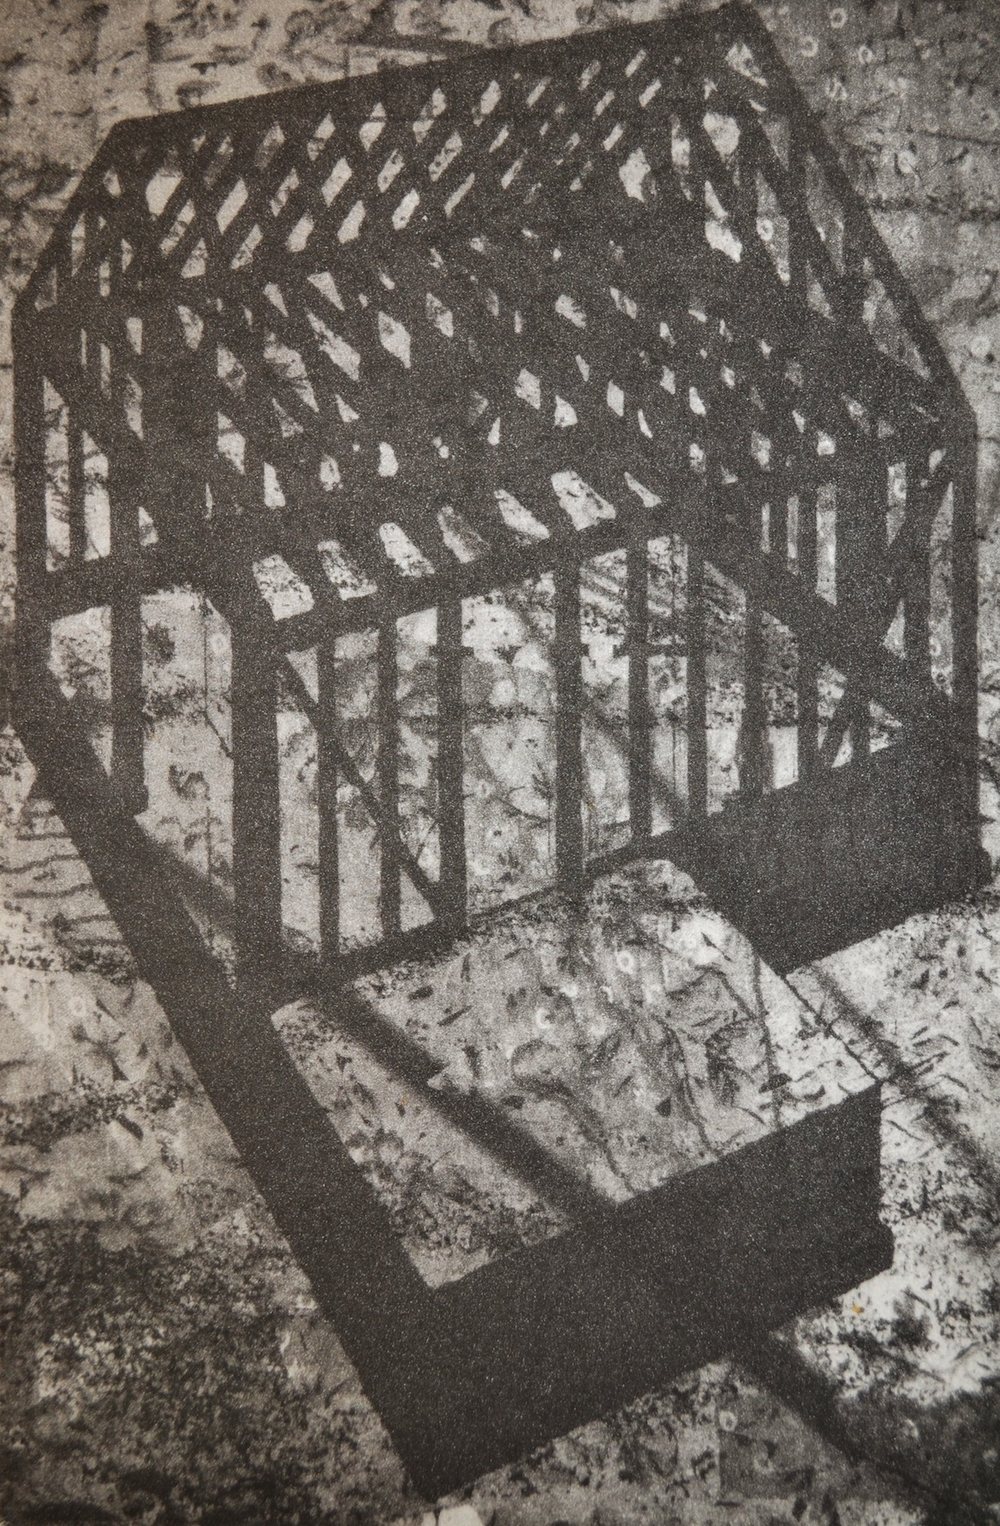 "Home, 9 x 6"", photogravure, 2013"